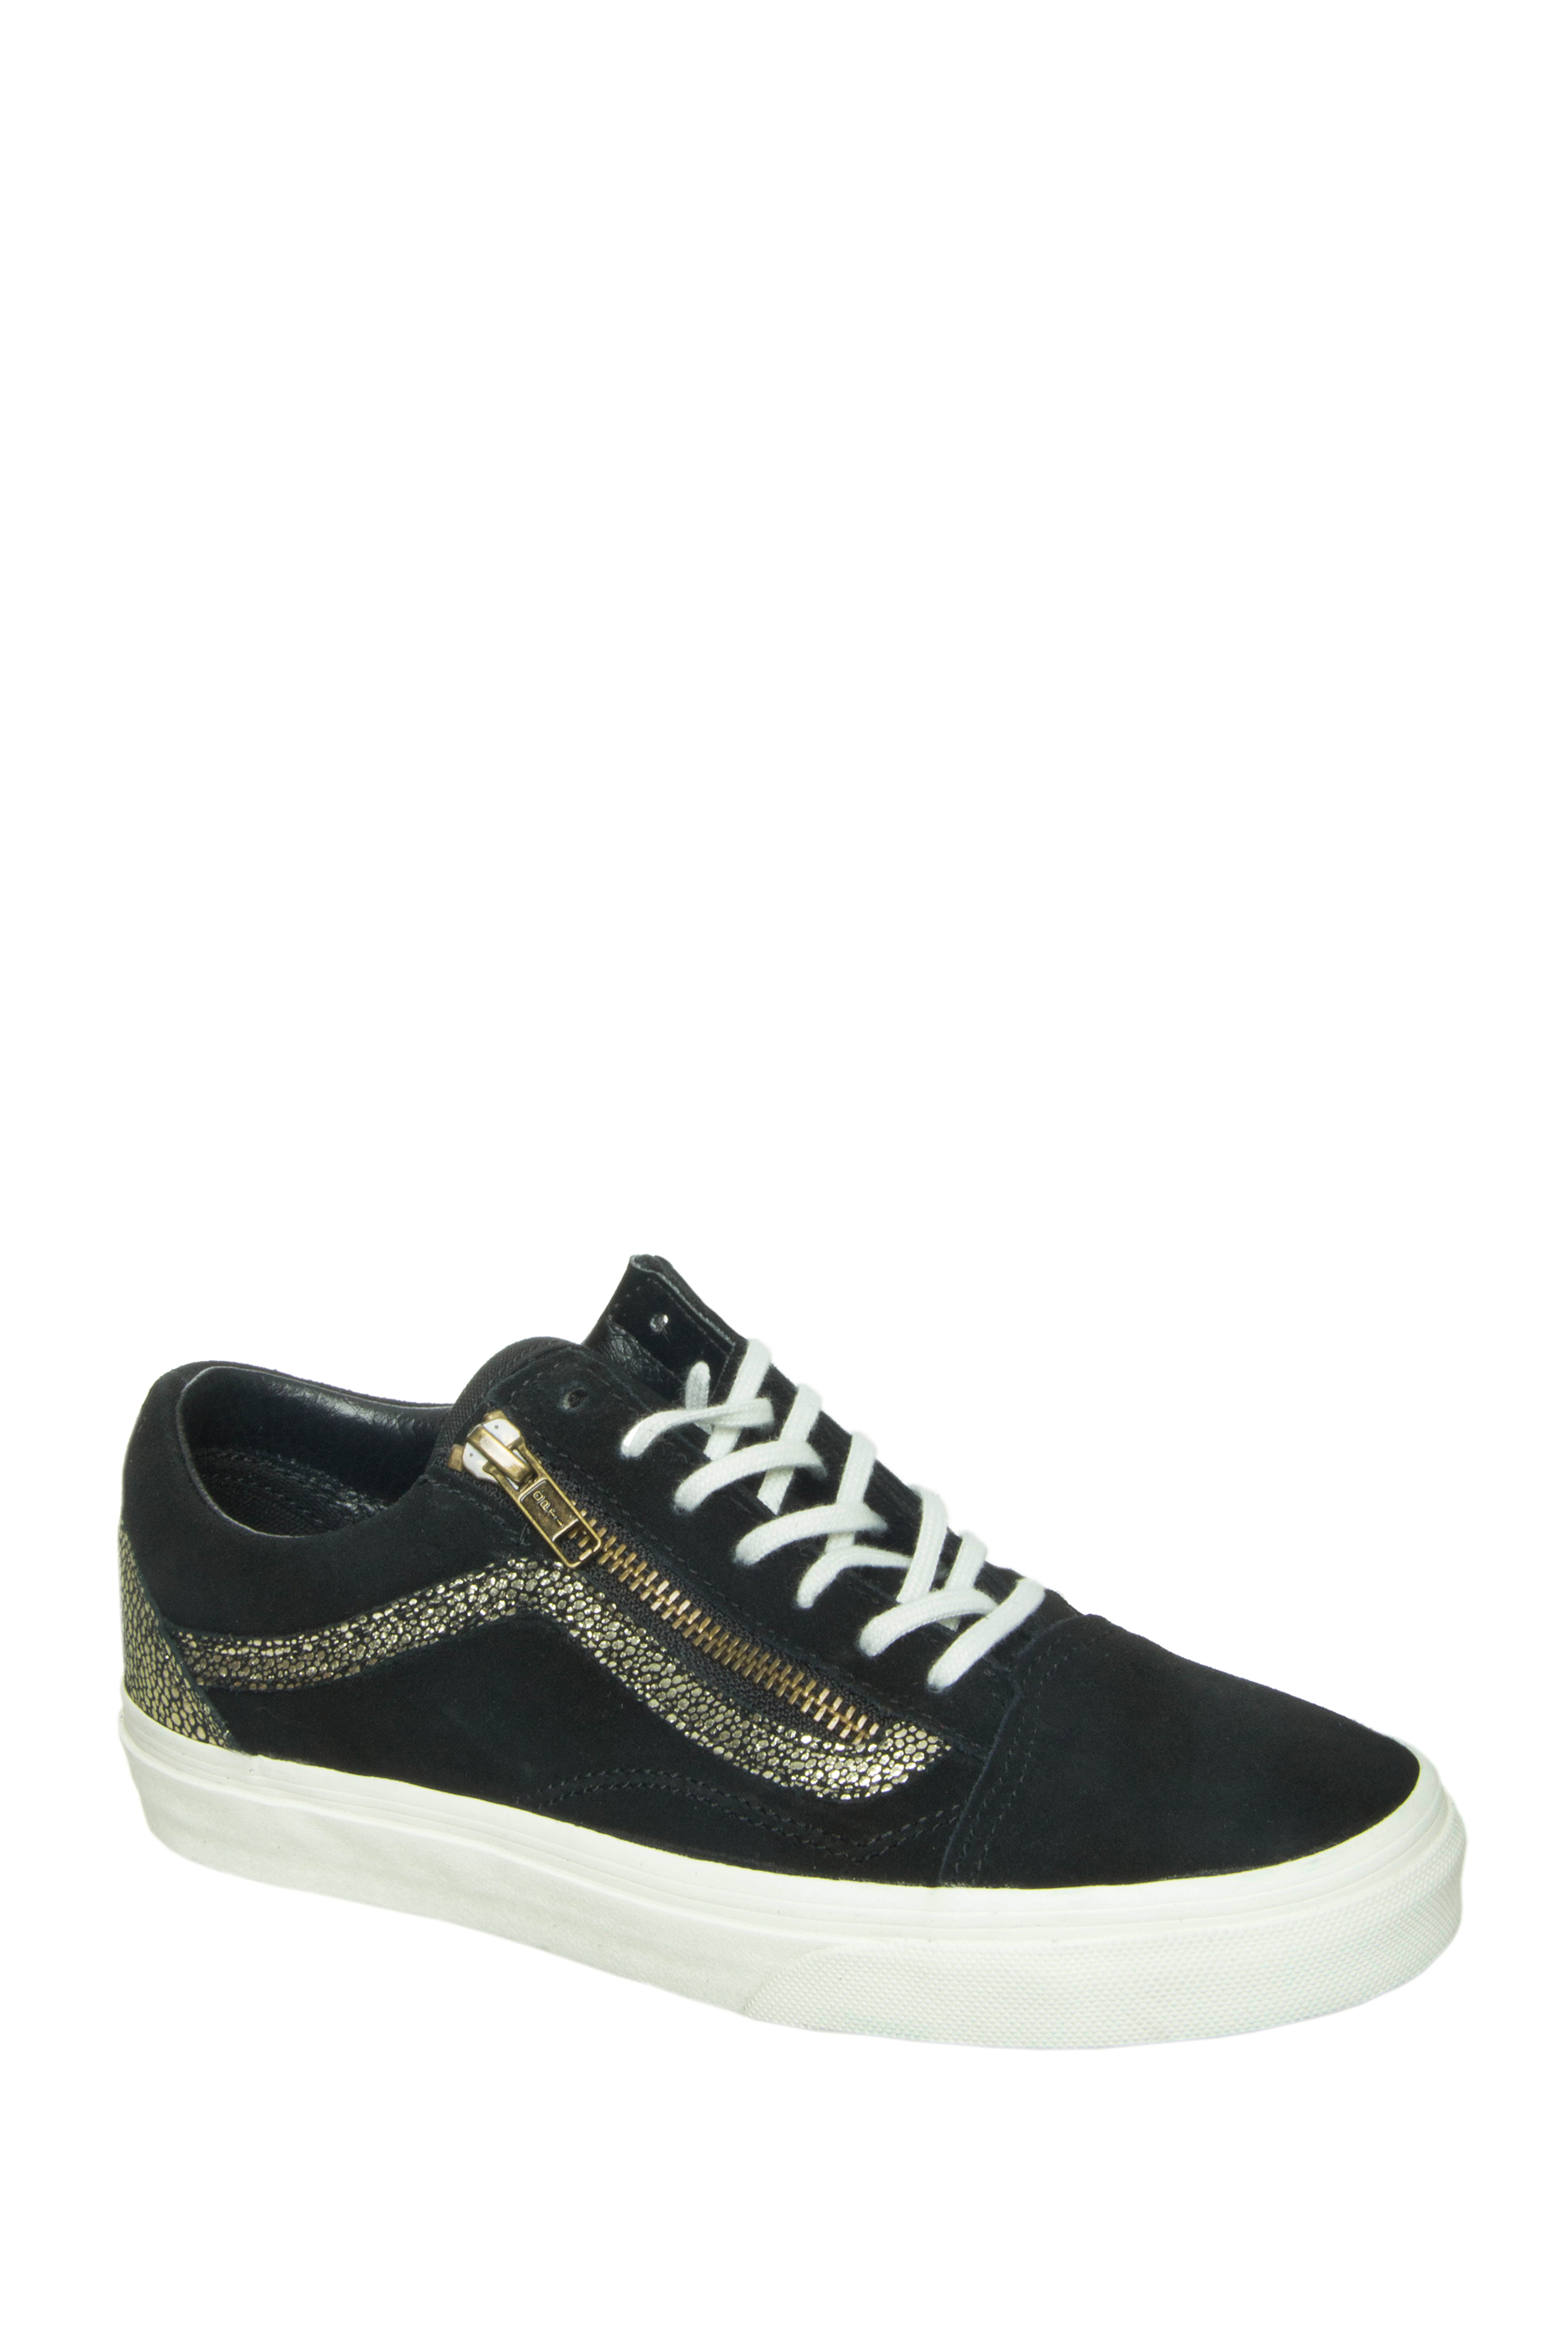 Vans Unisex Old Skool Zip Gold Dots Sneakers - Gold